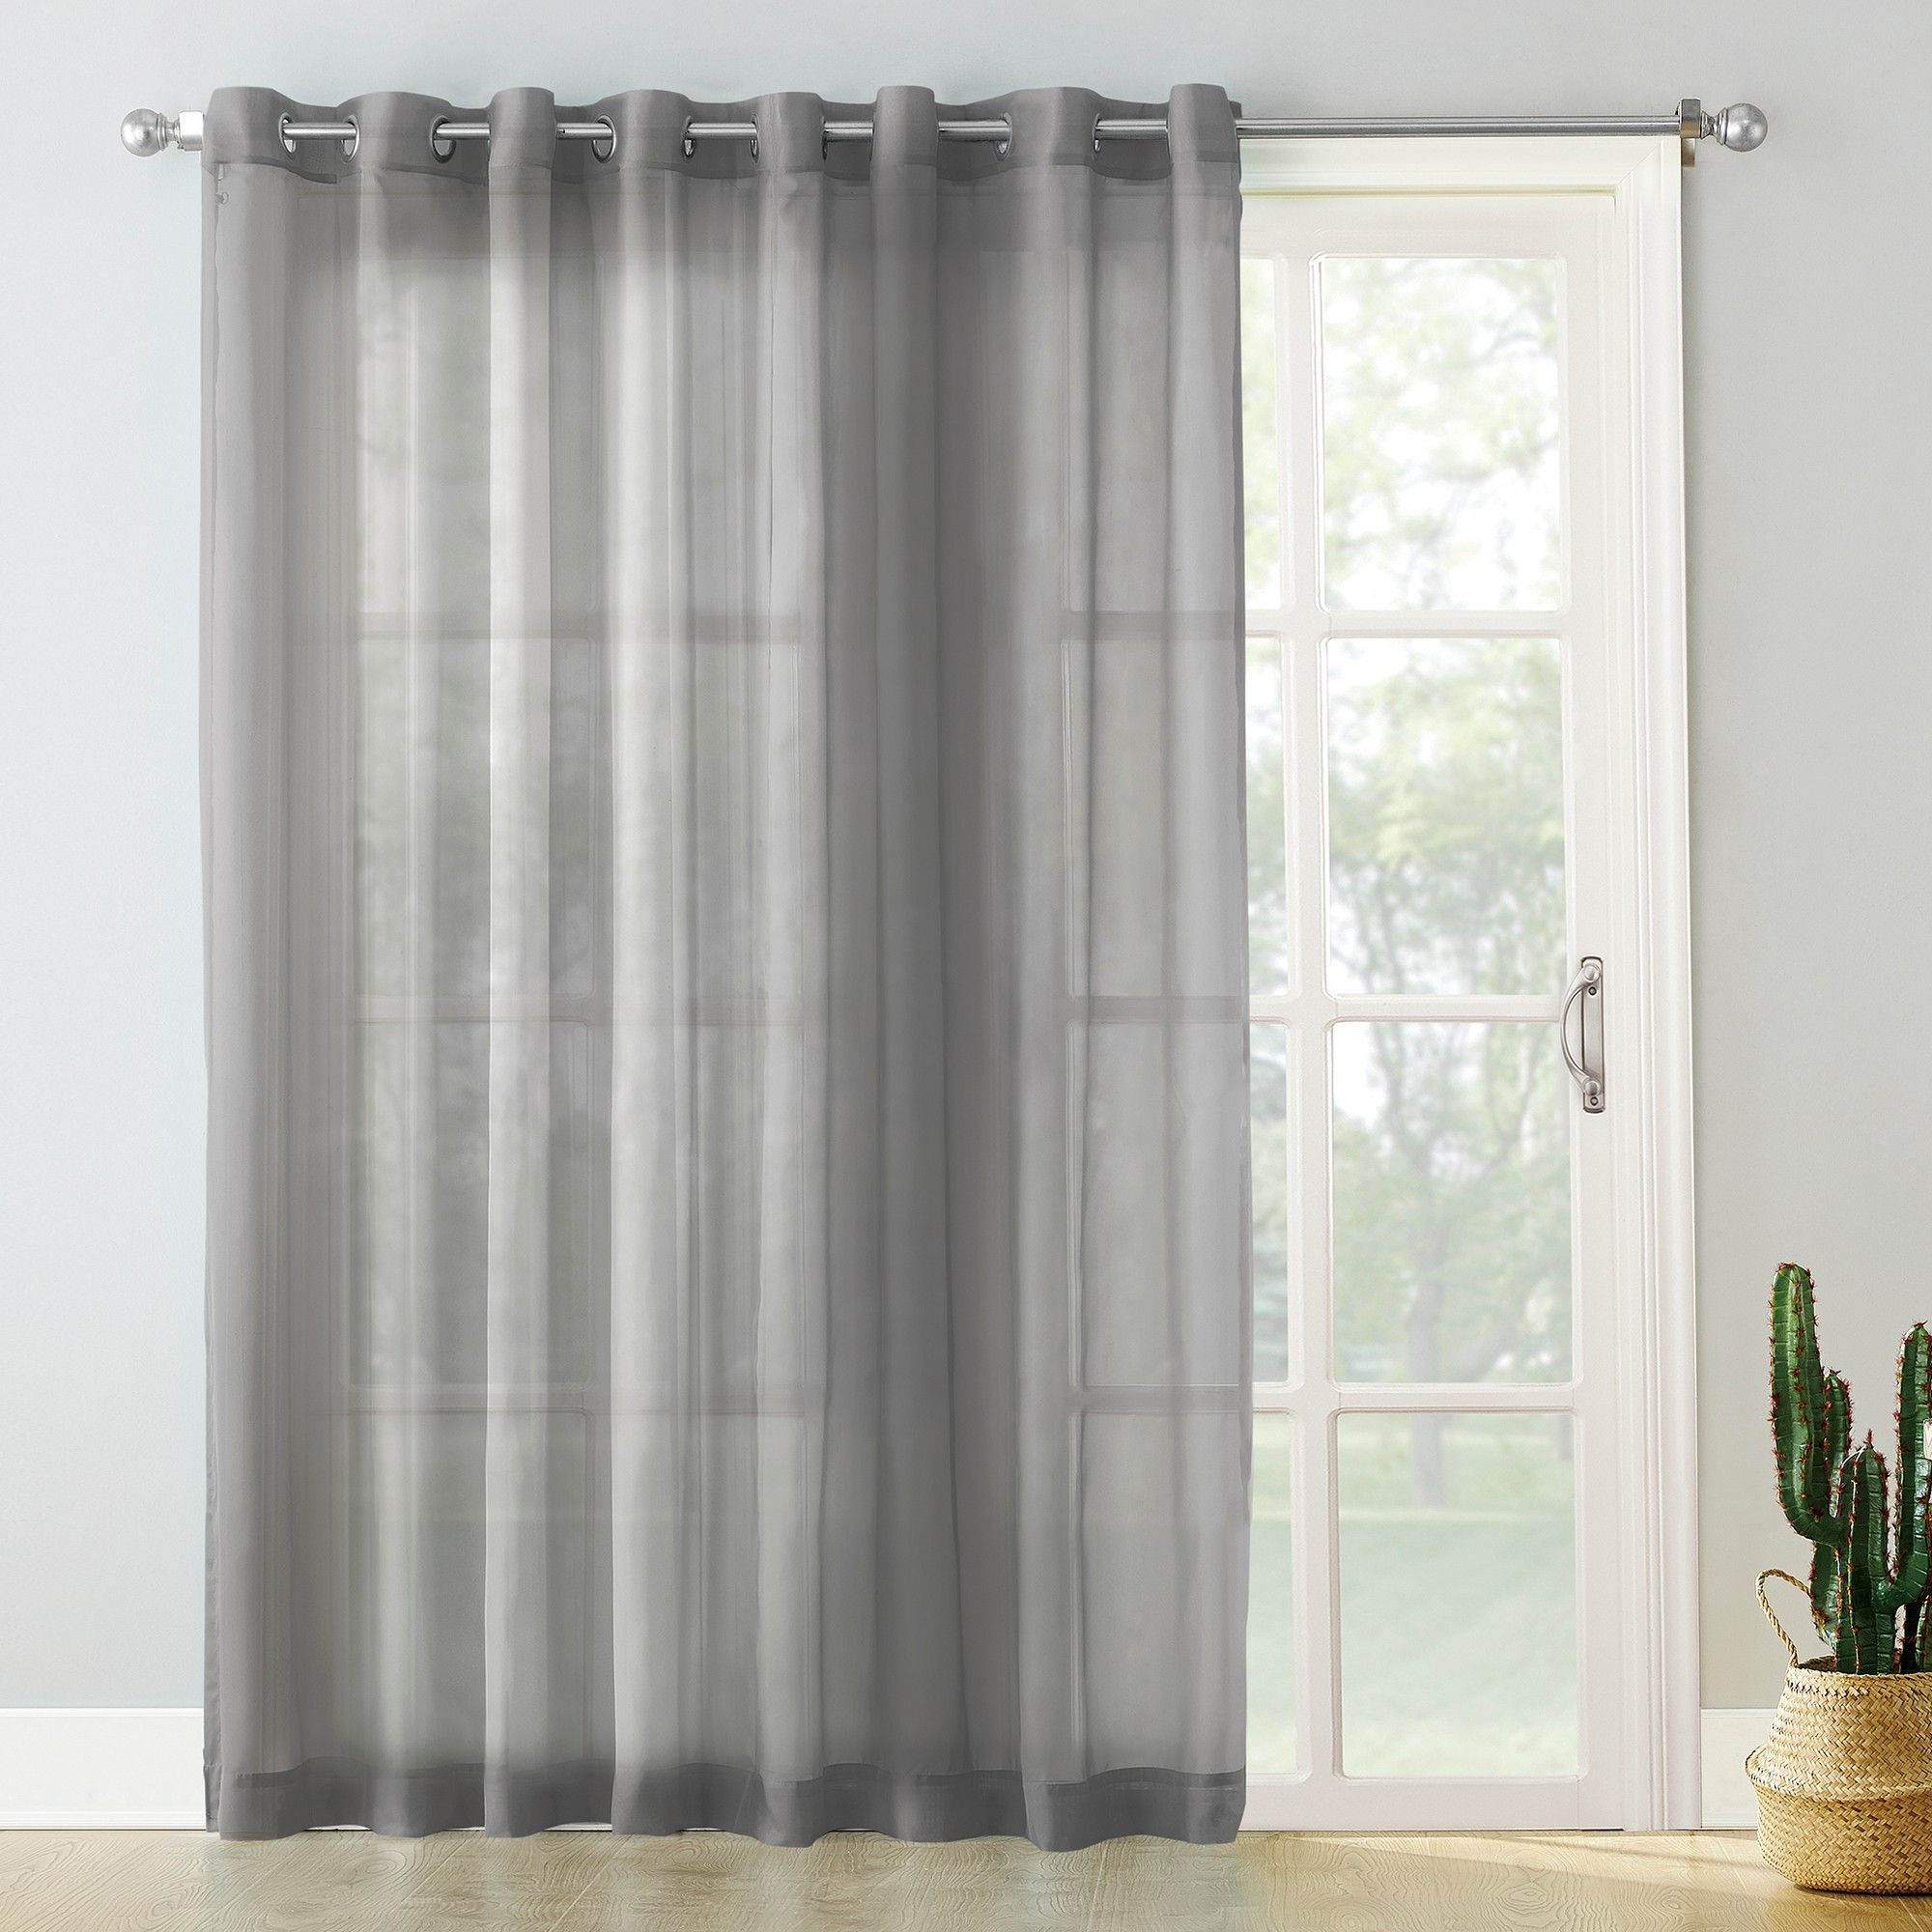 Emily Extra Wide Sheer Voile Sliding Door Patio Curtain Pertaining To Emily Sheer Voile Grommet Curtain Panels (View 4 of 20)